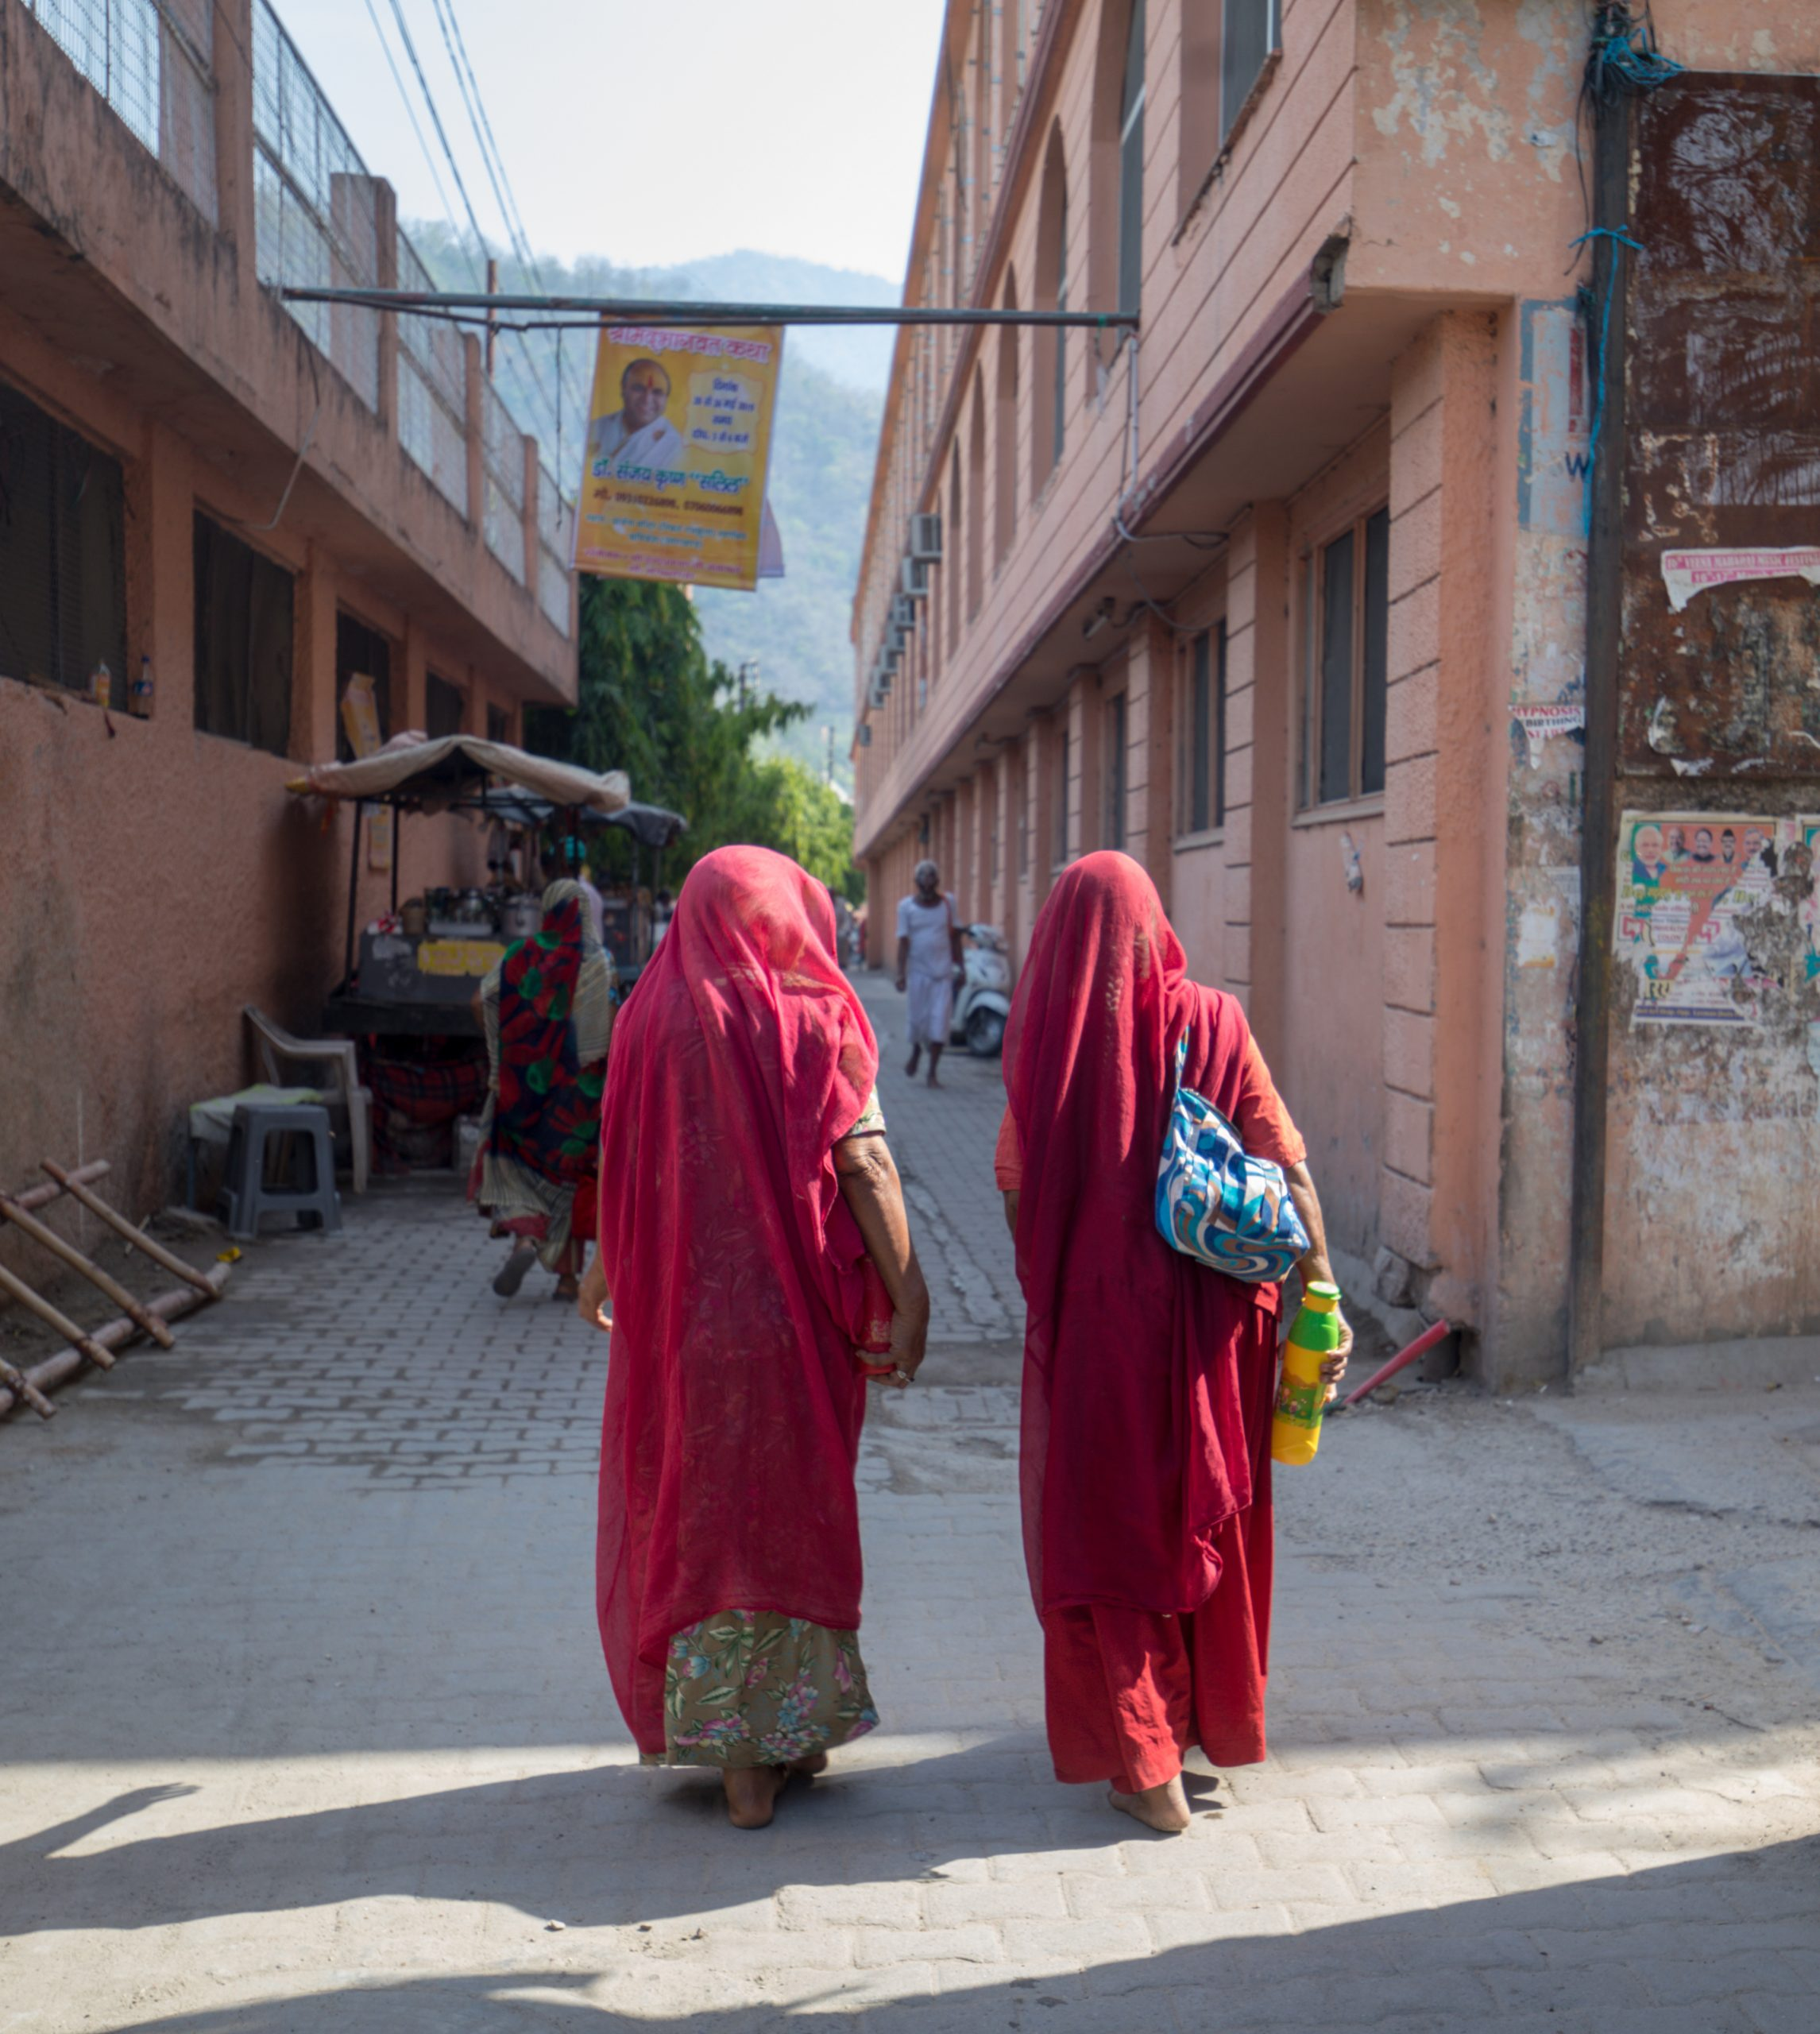 Two Indian Women Walking Towards the Alley